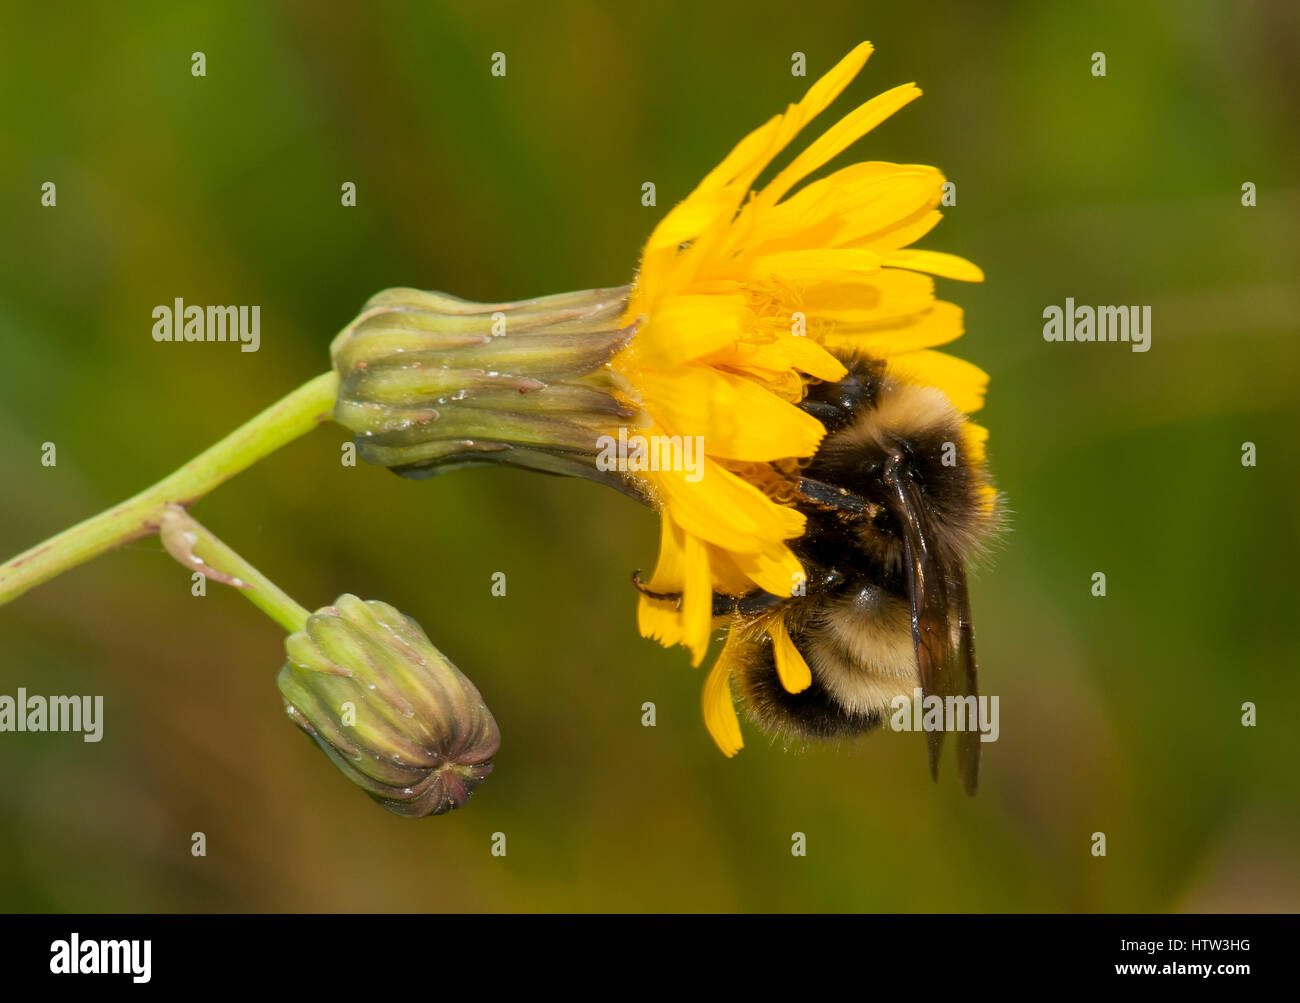 Bumble bee pollinating flower - Stock Image